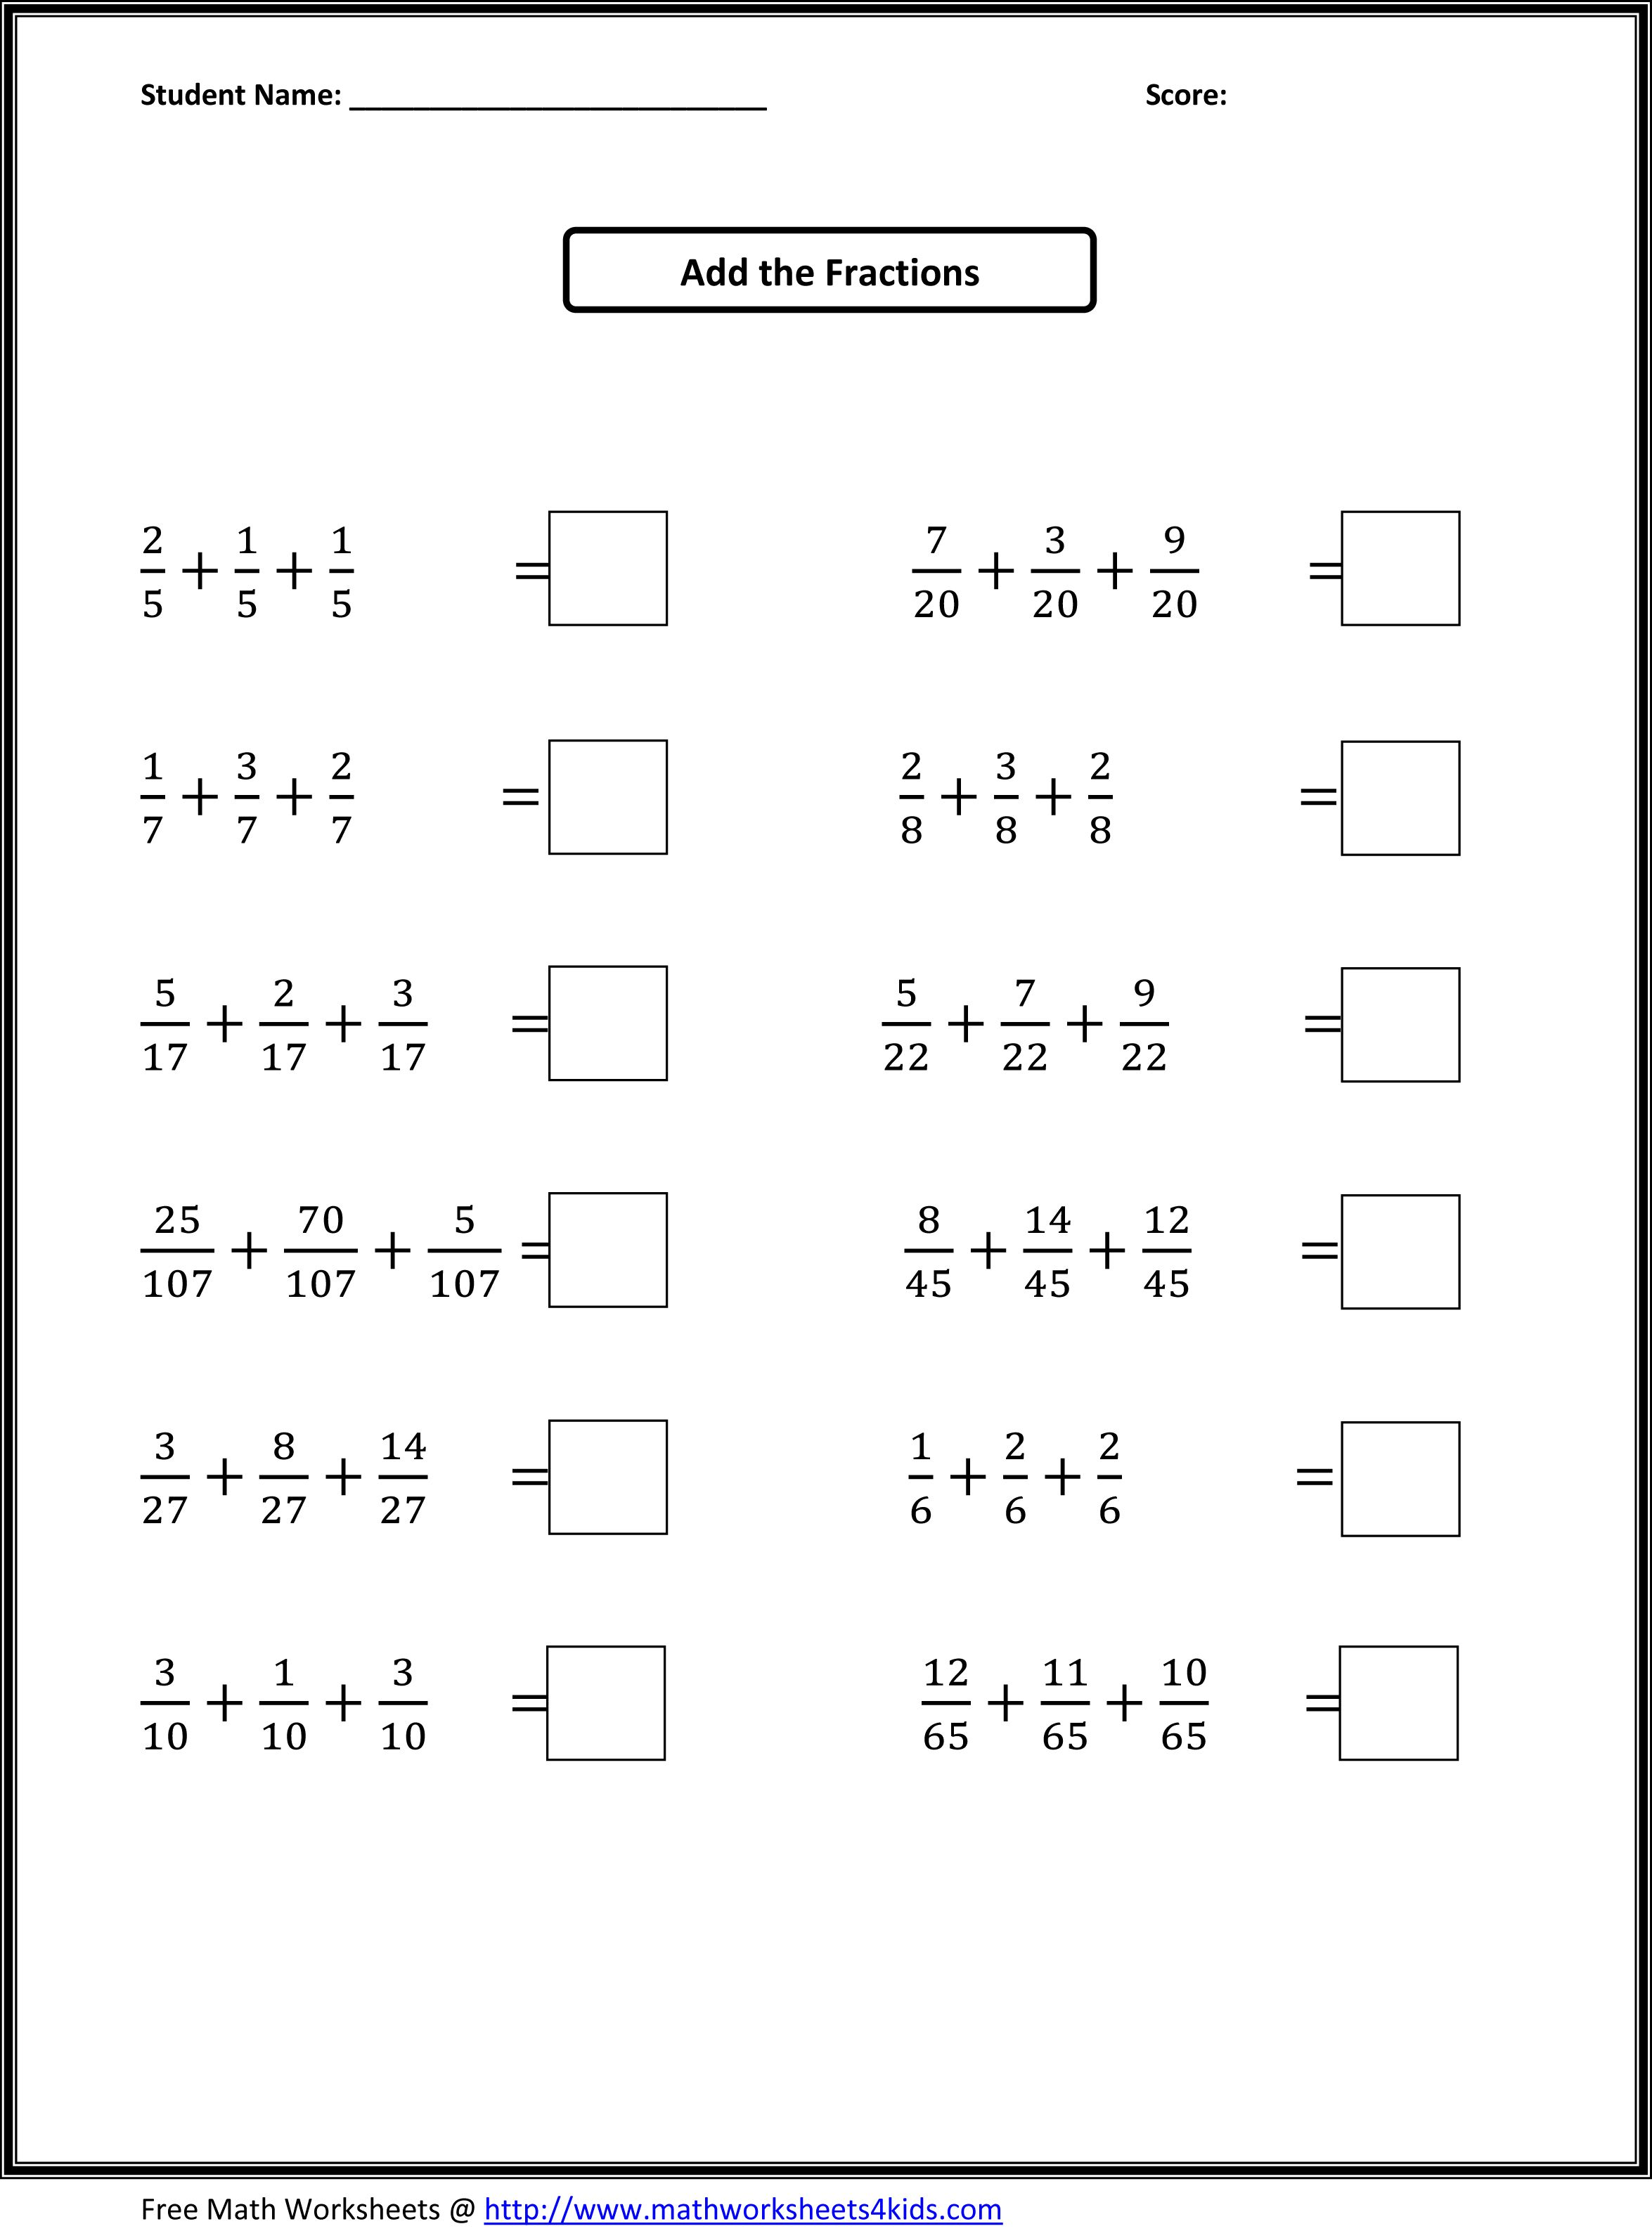 Printable worksheets by grade level and by skill. | 4th ...